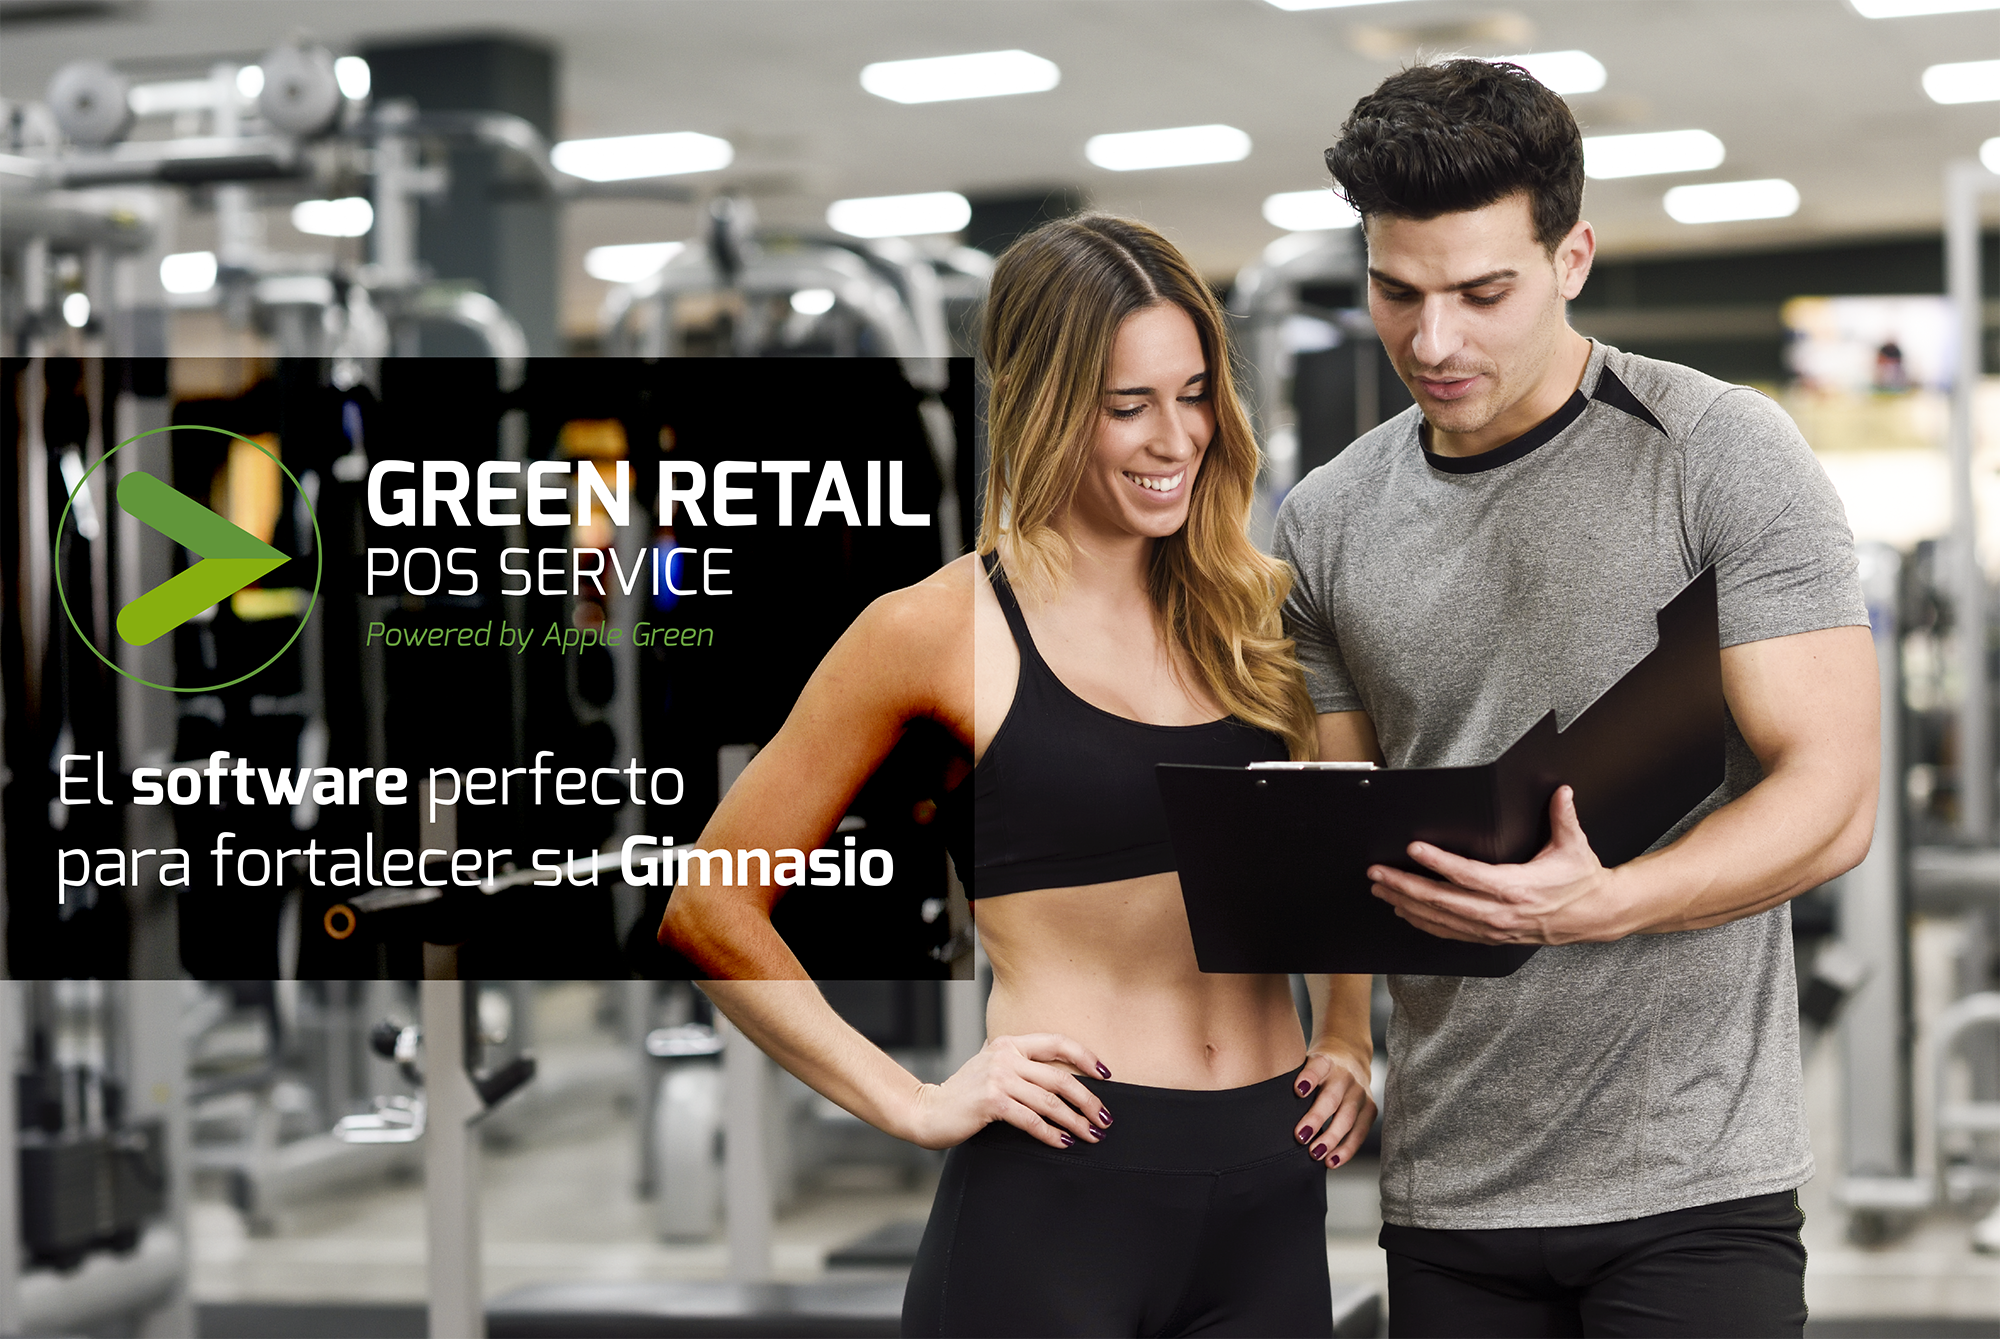 Green Retail Gimnasios